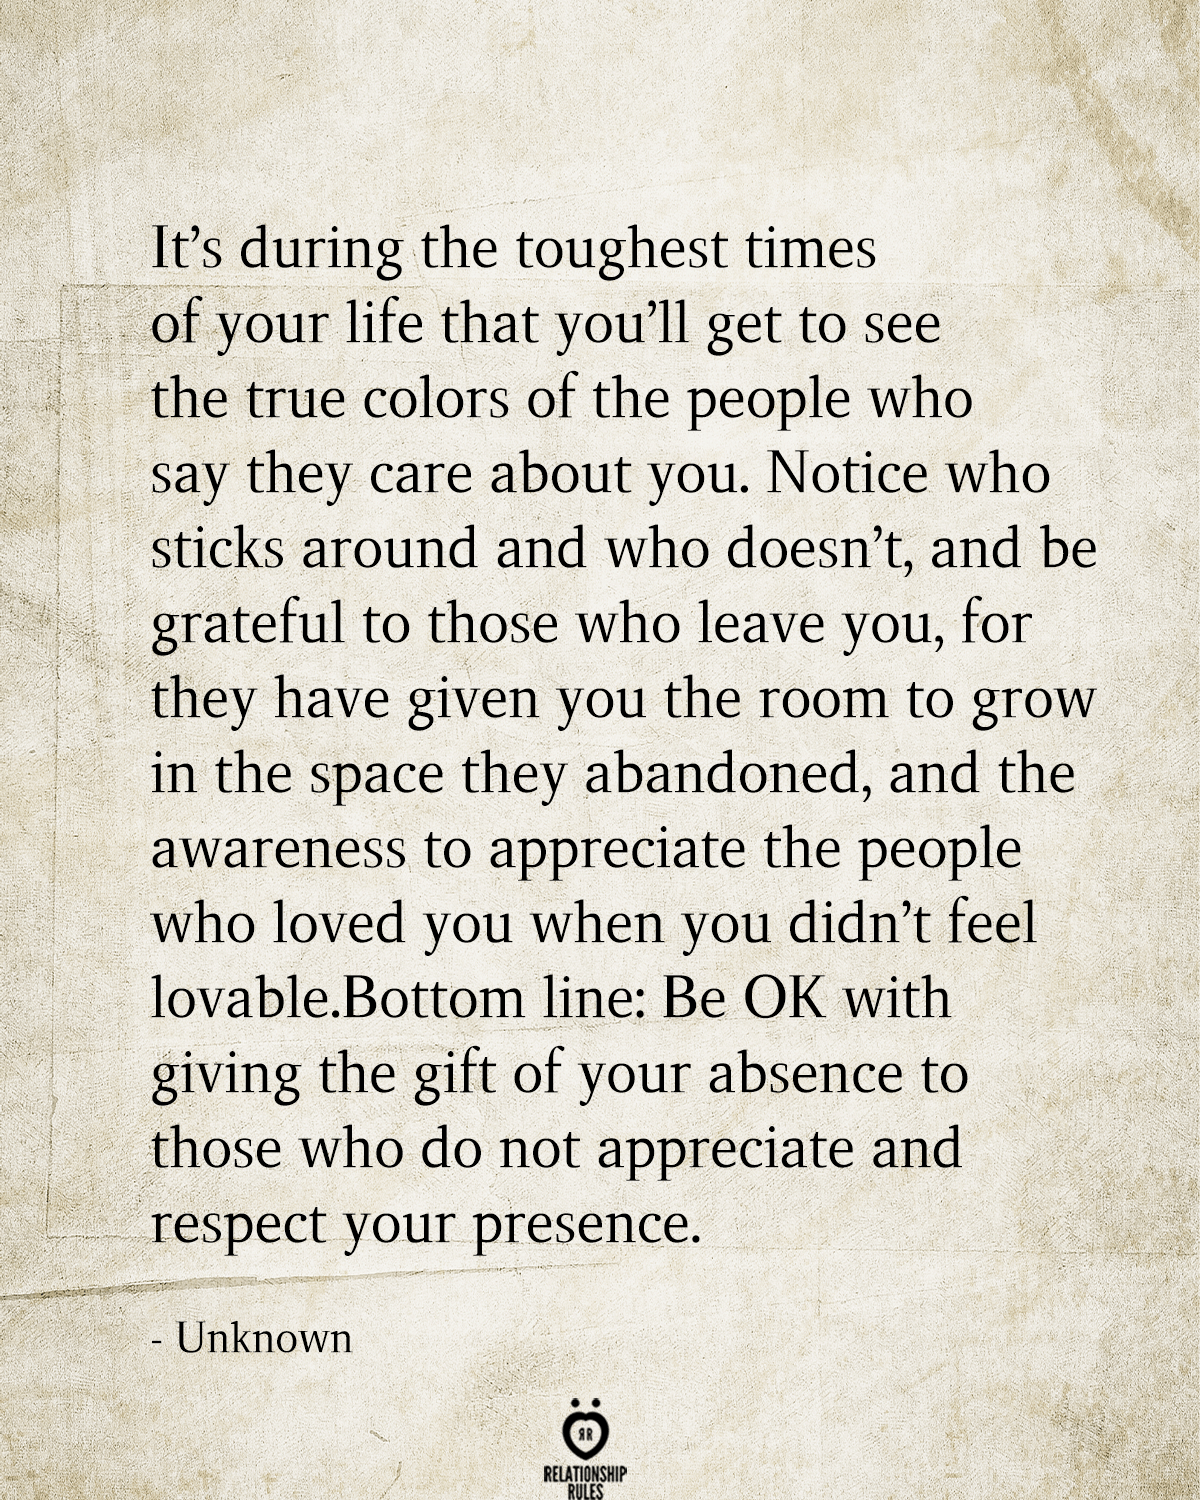 It's During The Toughest Times Of Your Life That You'll Get To See The True Colors Of The People